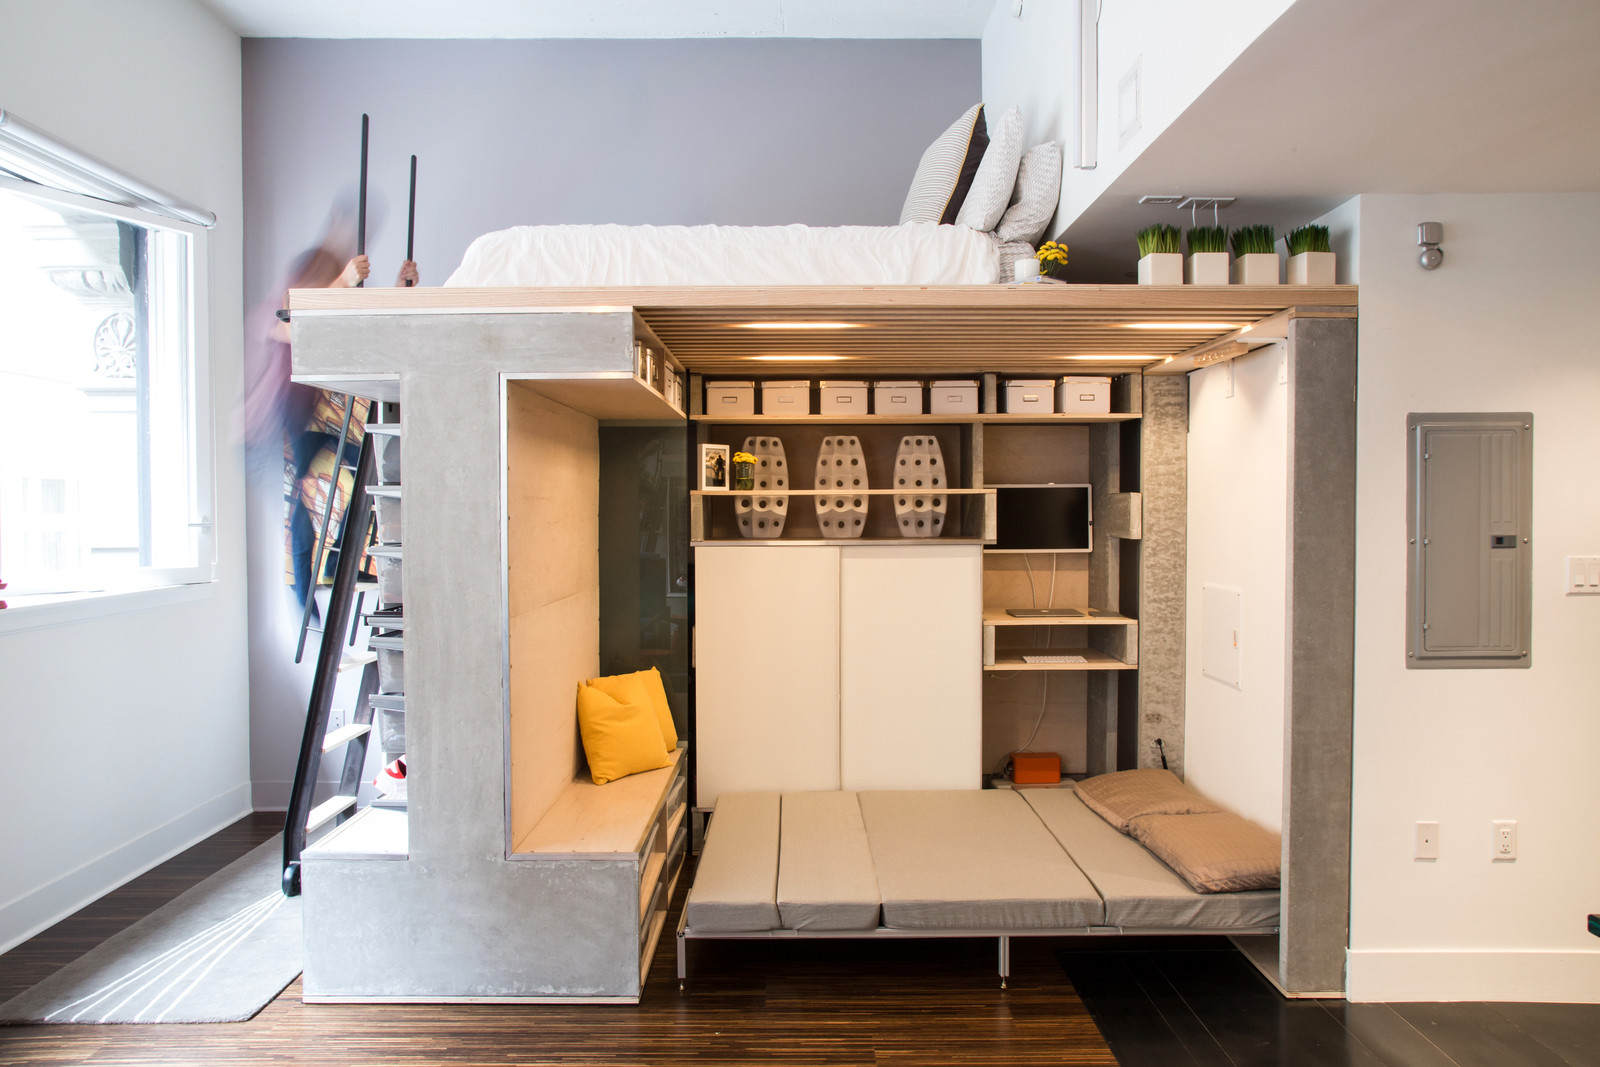 Innovative small space design